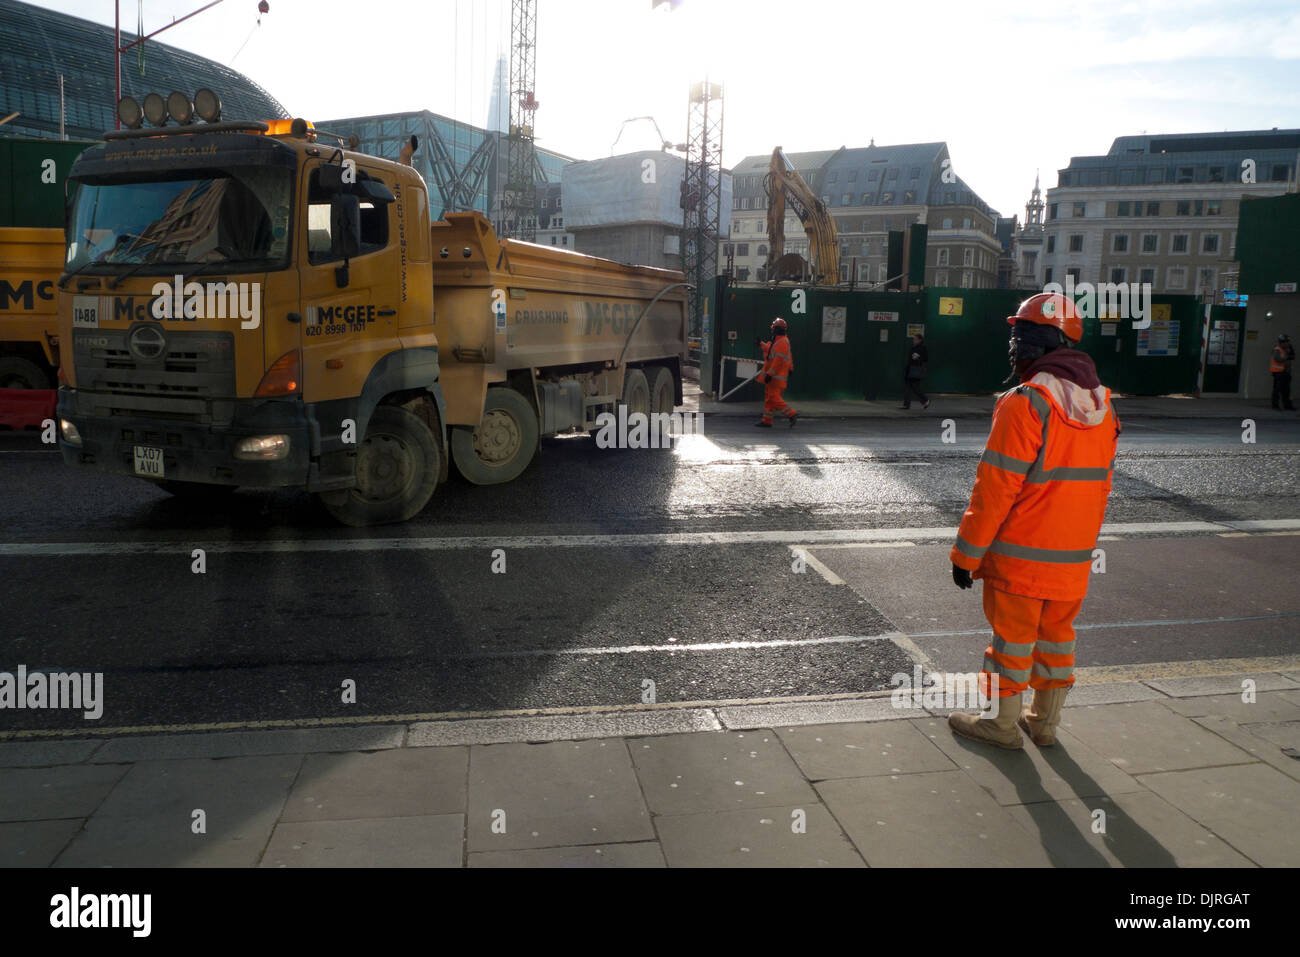 Lorry at entrance to Bloomberg Place construction site  of Bloomberg Headquarters on Queen Victoria Street in City of London England UK   KATHY DEWITT - Stock Image